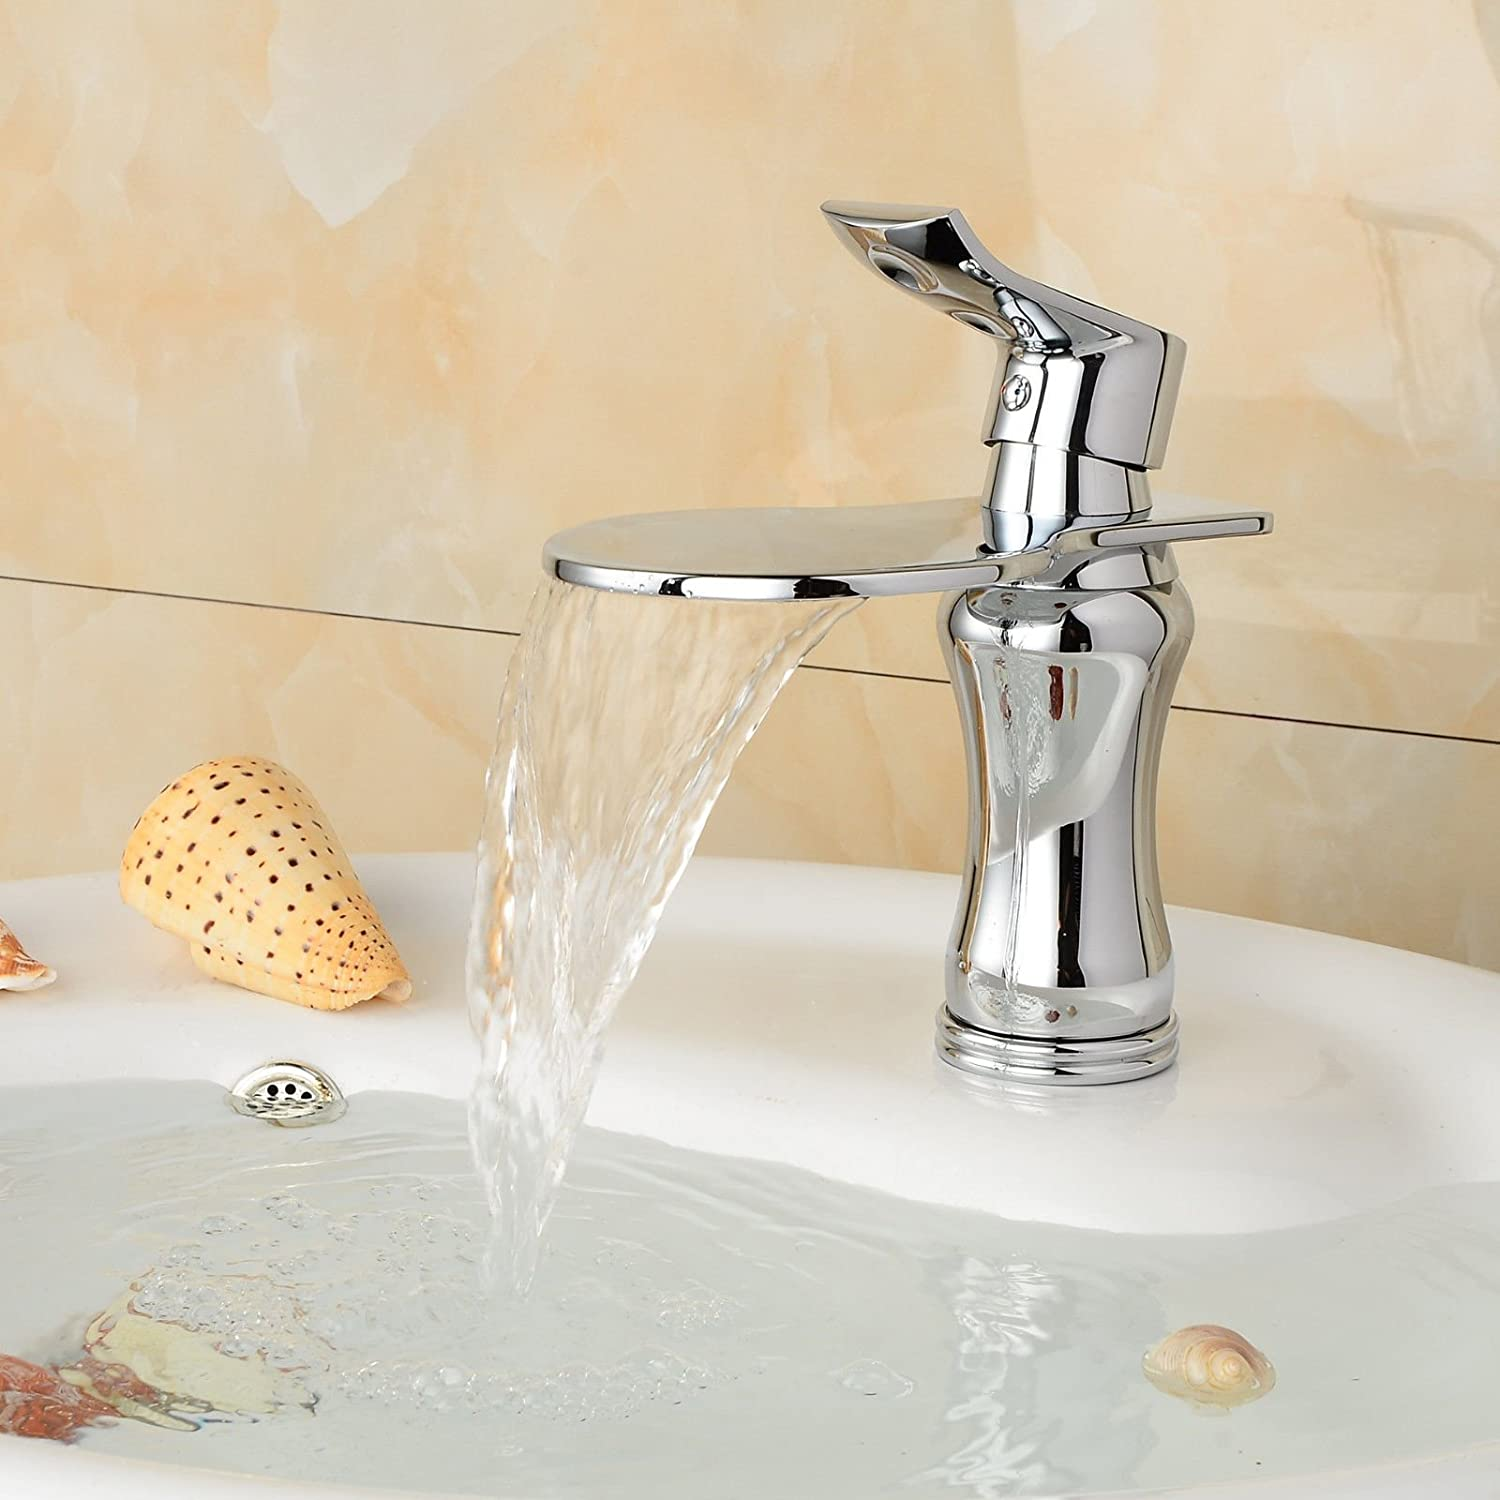 Lpophy Bathroom Sink Mixer Taps Faucet Bath Waterfall Cold and Hot Water Tap for Washroom Bathroom and Kitchen Copper Chrome Hot and Cold Silver Plating Waterfall